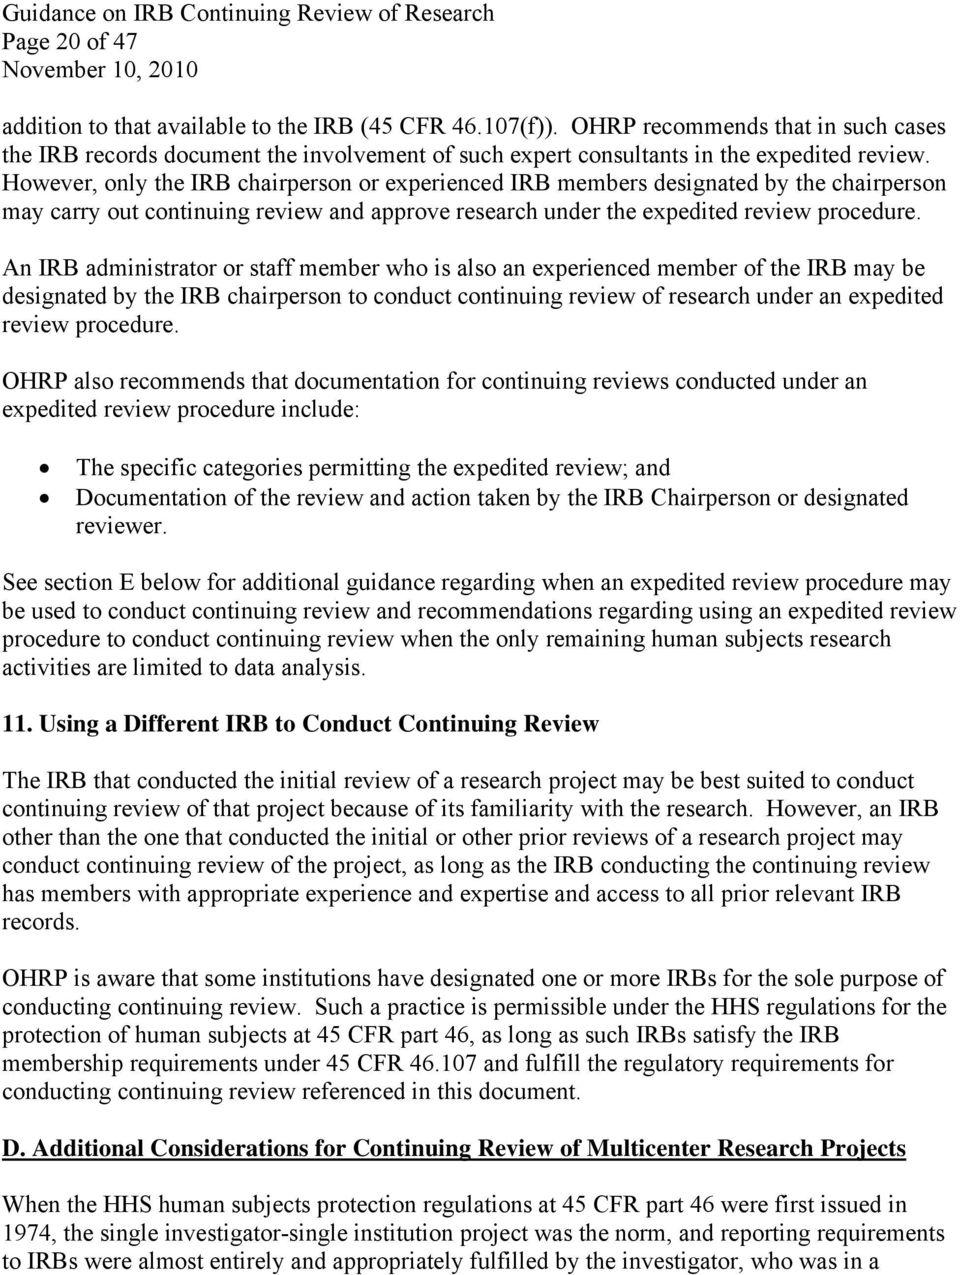 An IRB administrator or staff member who is also an experienced member of the IRB may be designated by the IRB chairperson to conduct continuing review of research under an expedited review procedure.